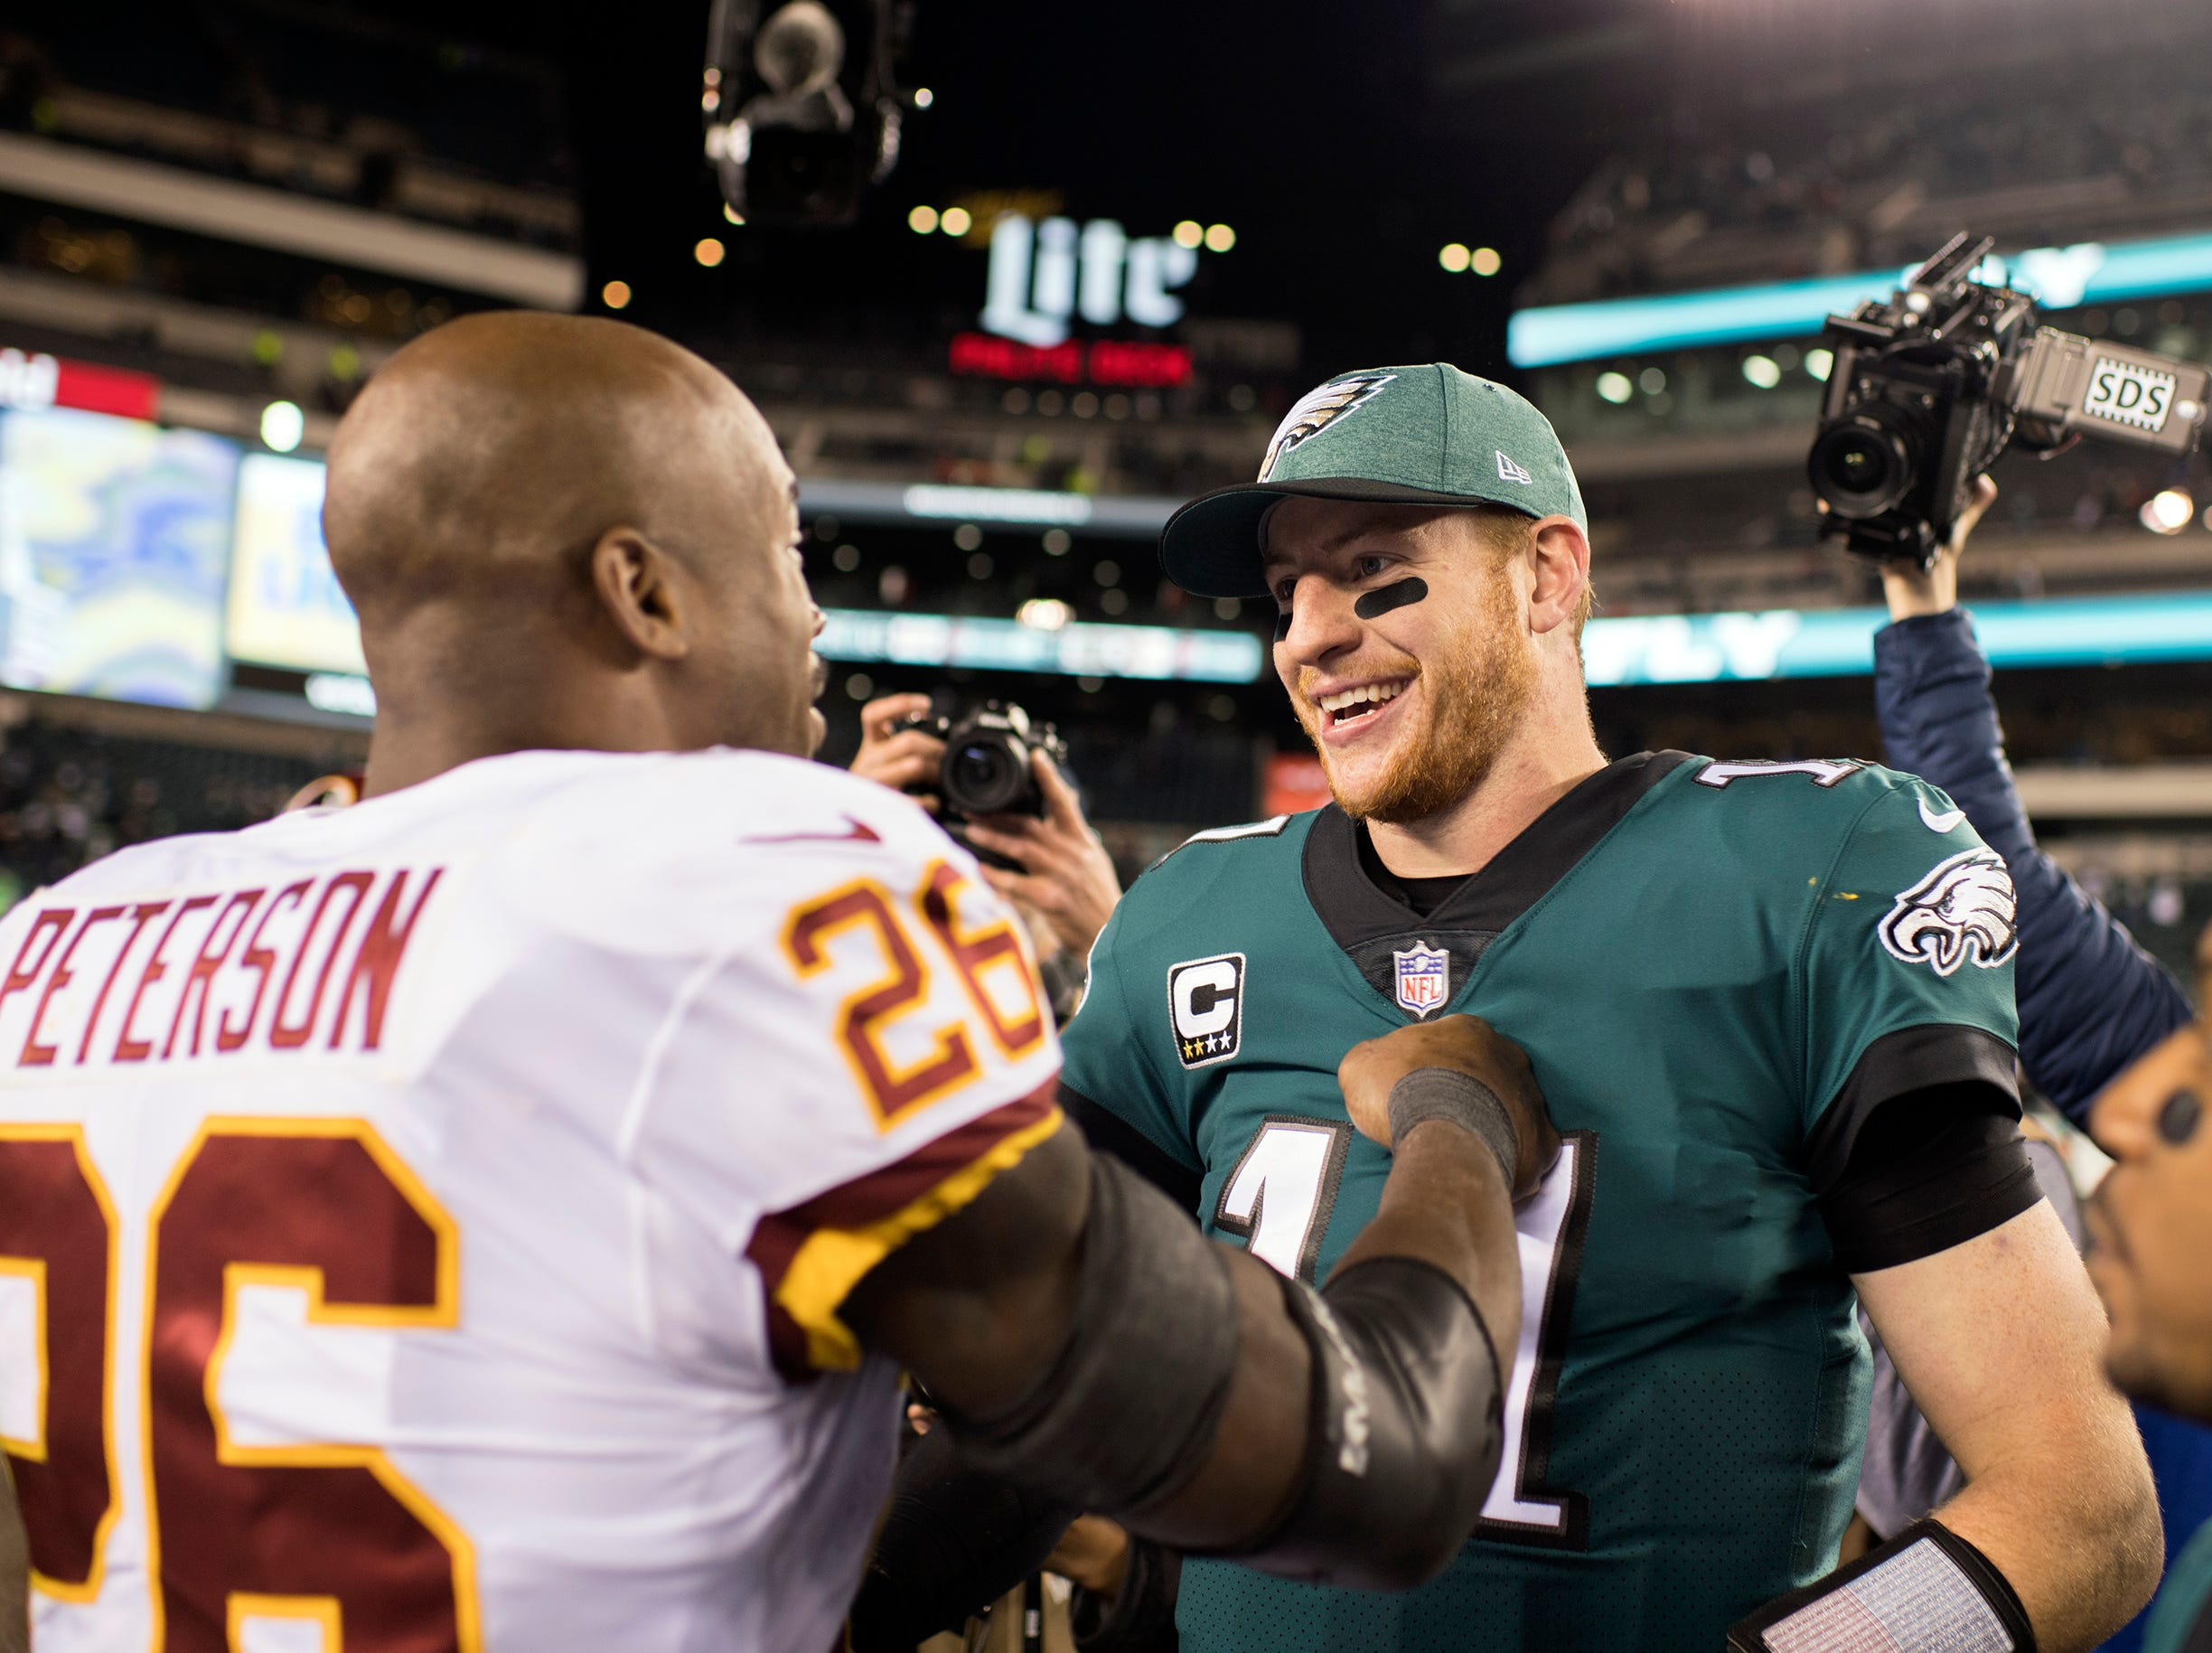 Eagles' Carson Wentz and Redskins' Adrian Peterson greet each other after a game Monday, Dec. 3, 2018 in Philadelphia. The Eagles won 28-13.